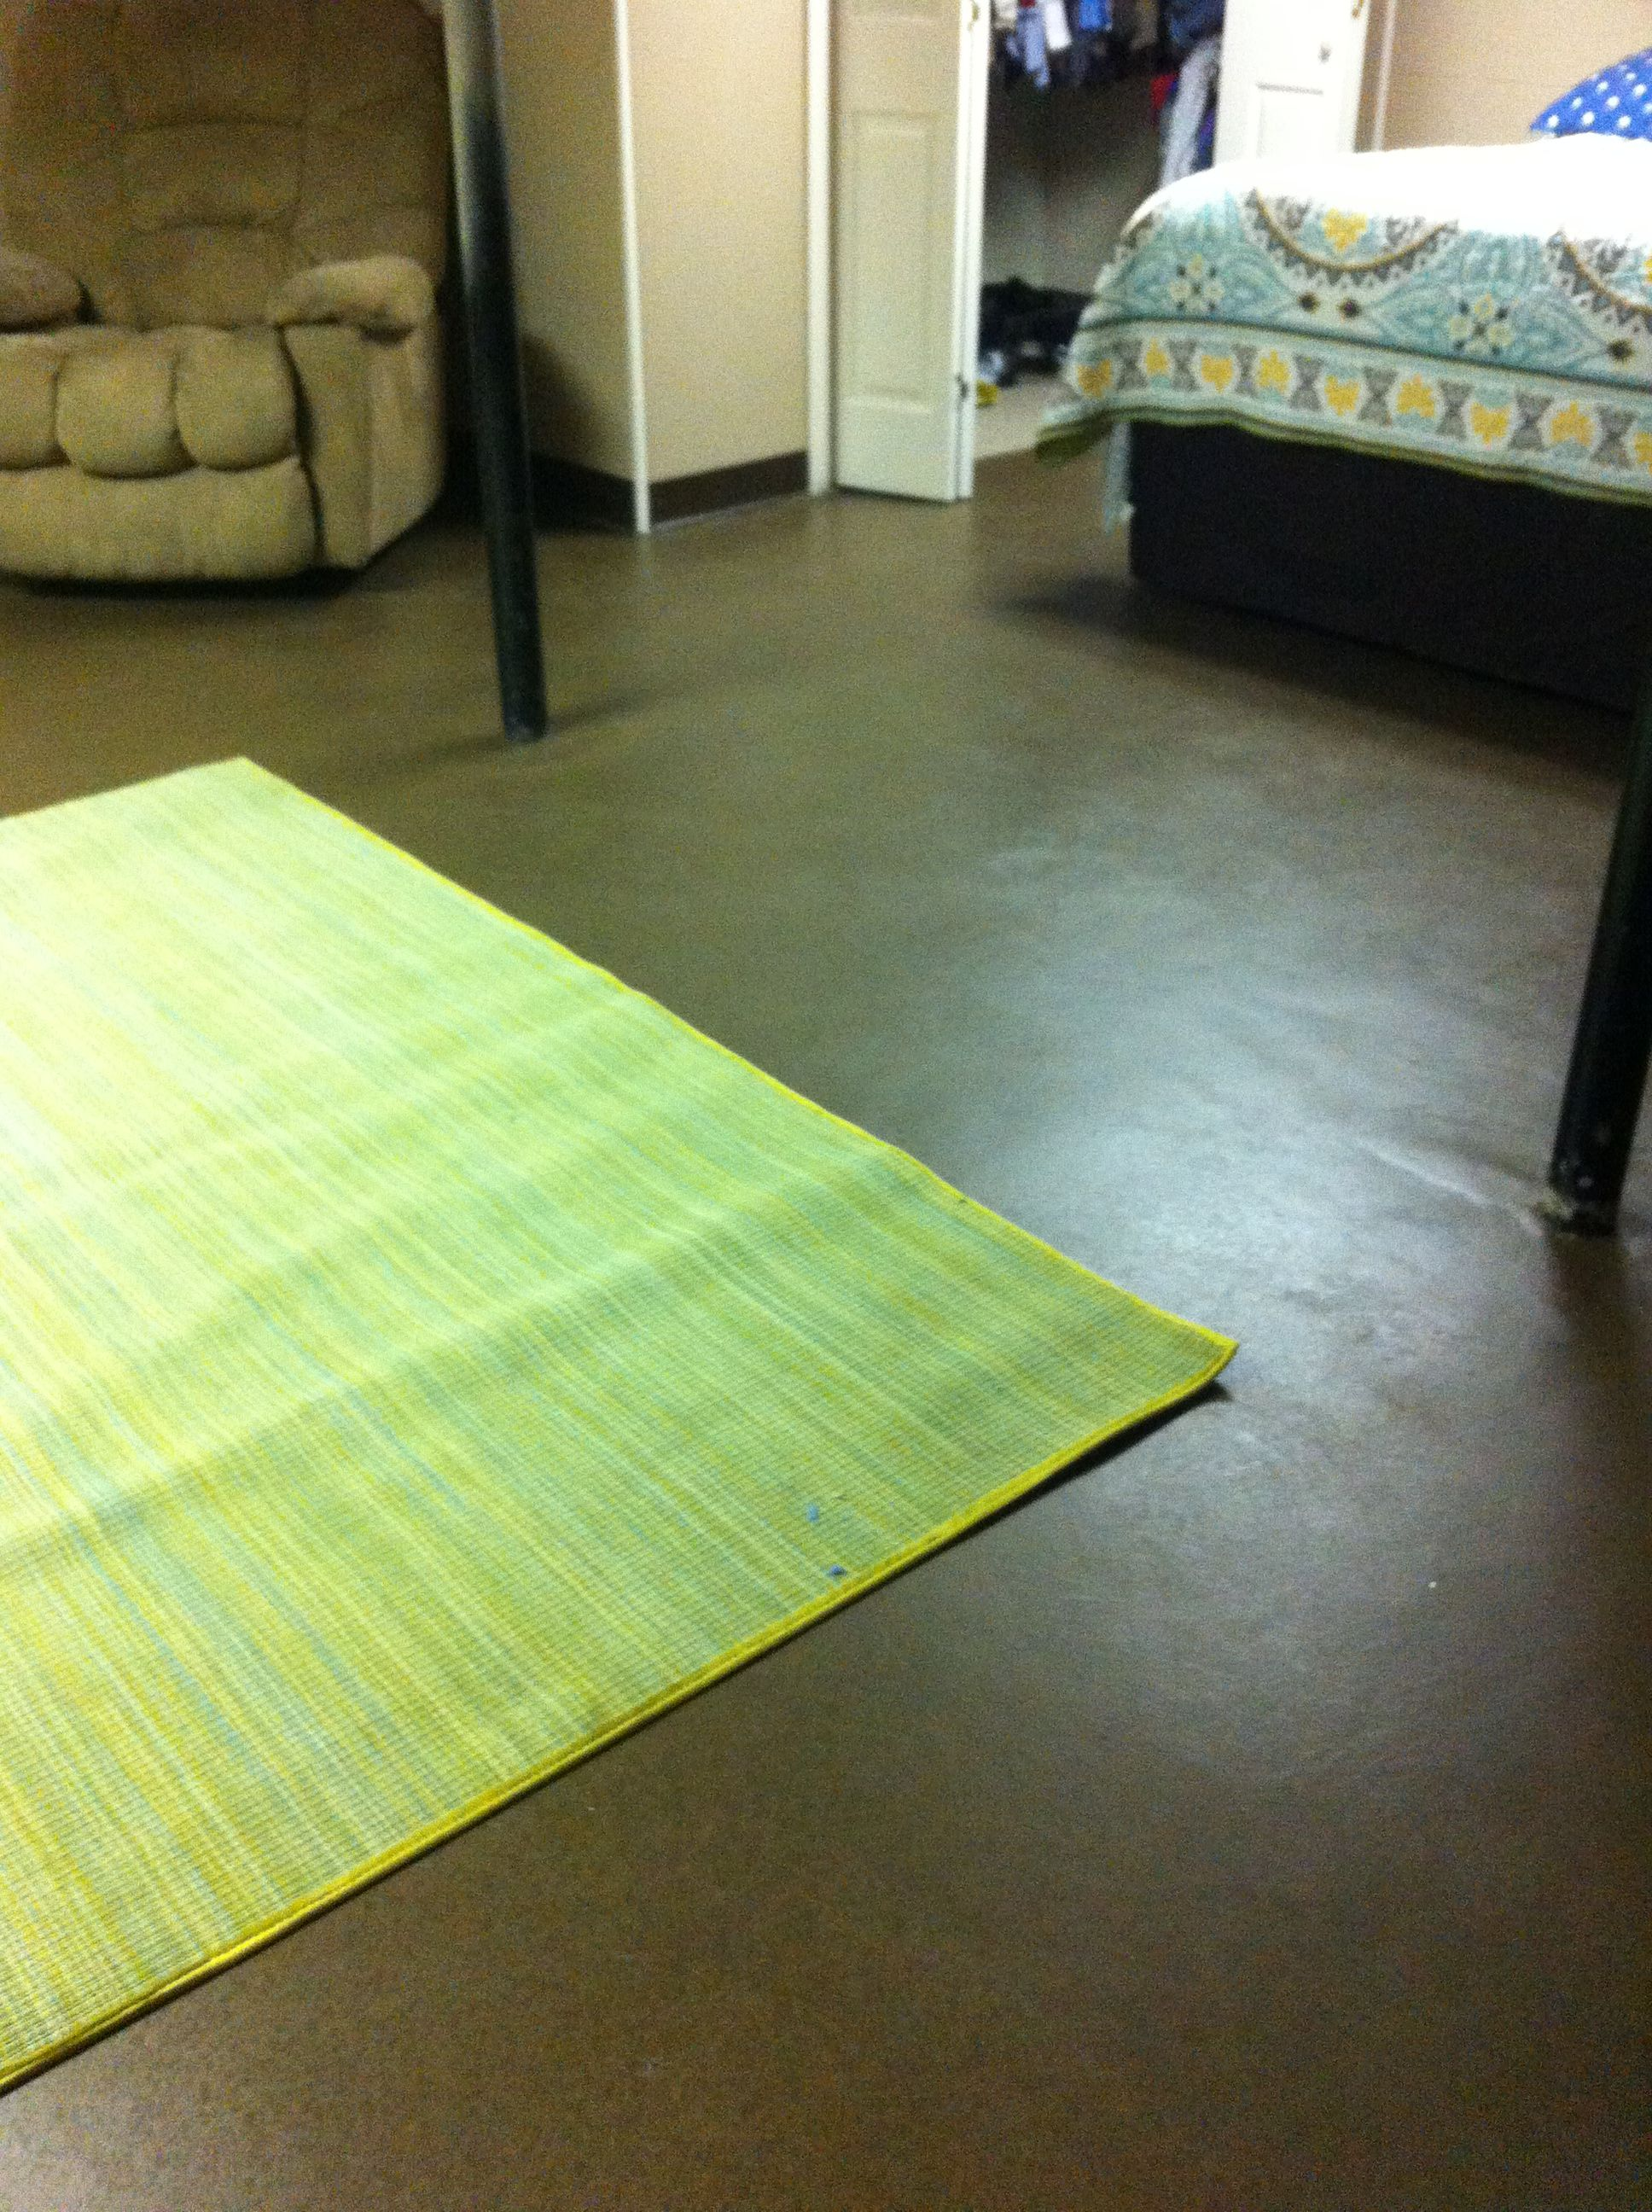 Bedroom Flooring Ideas Pinterest Painted Concrete Floors In Our Basement Bedroom Our Diy